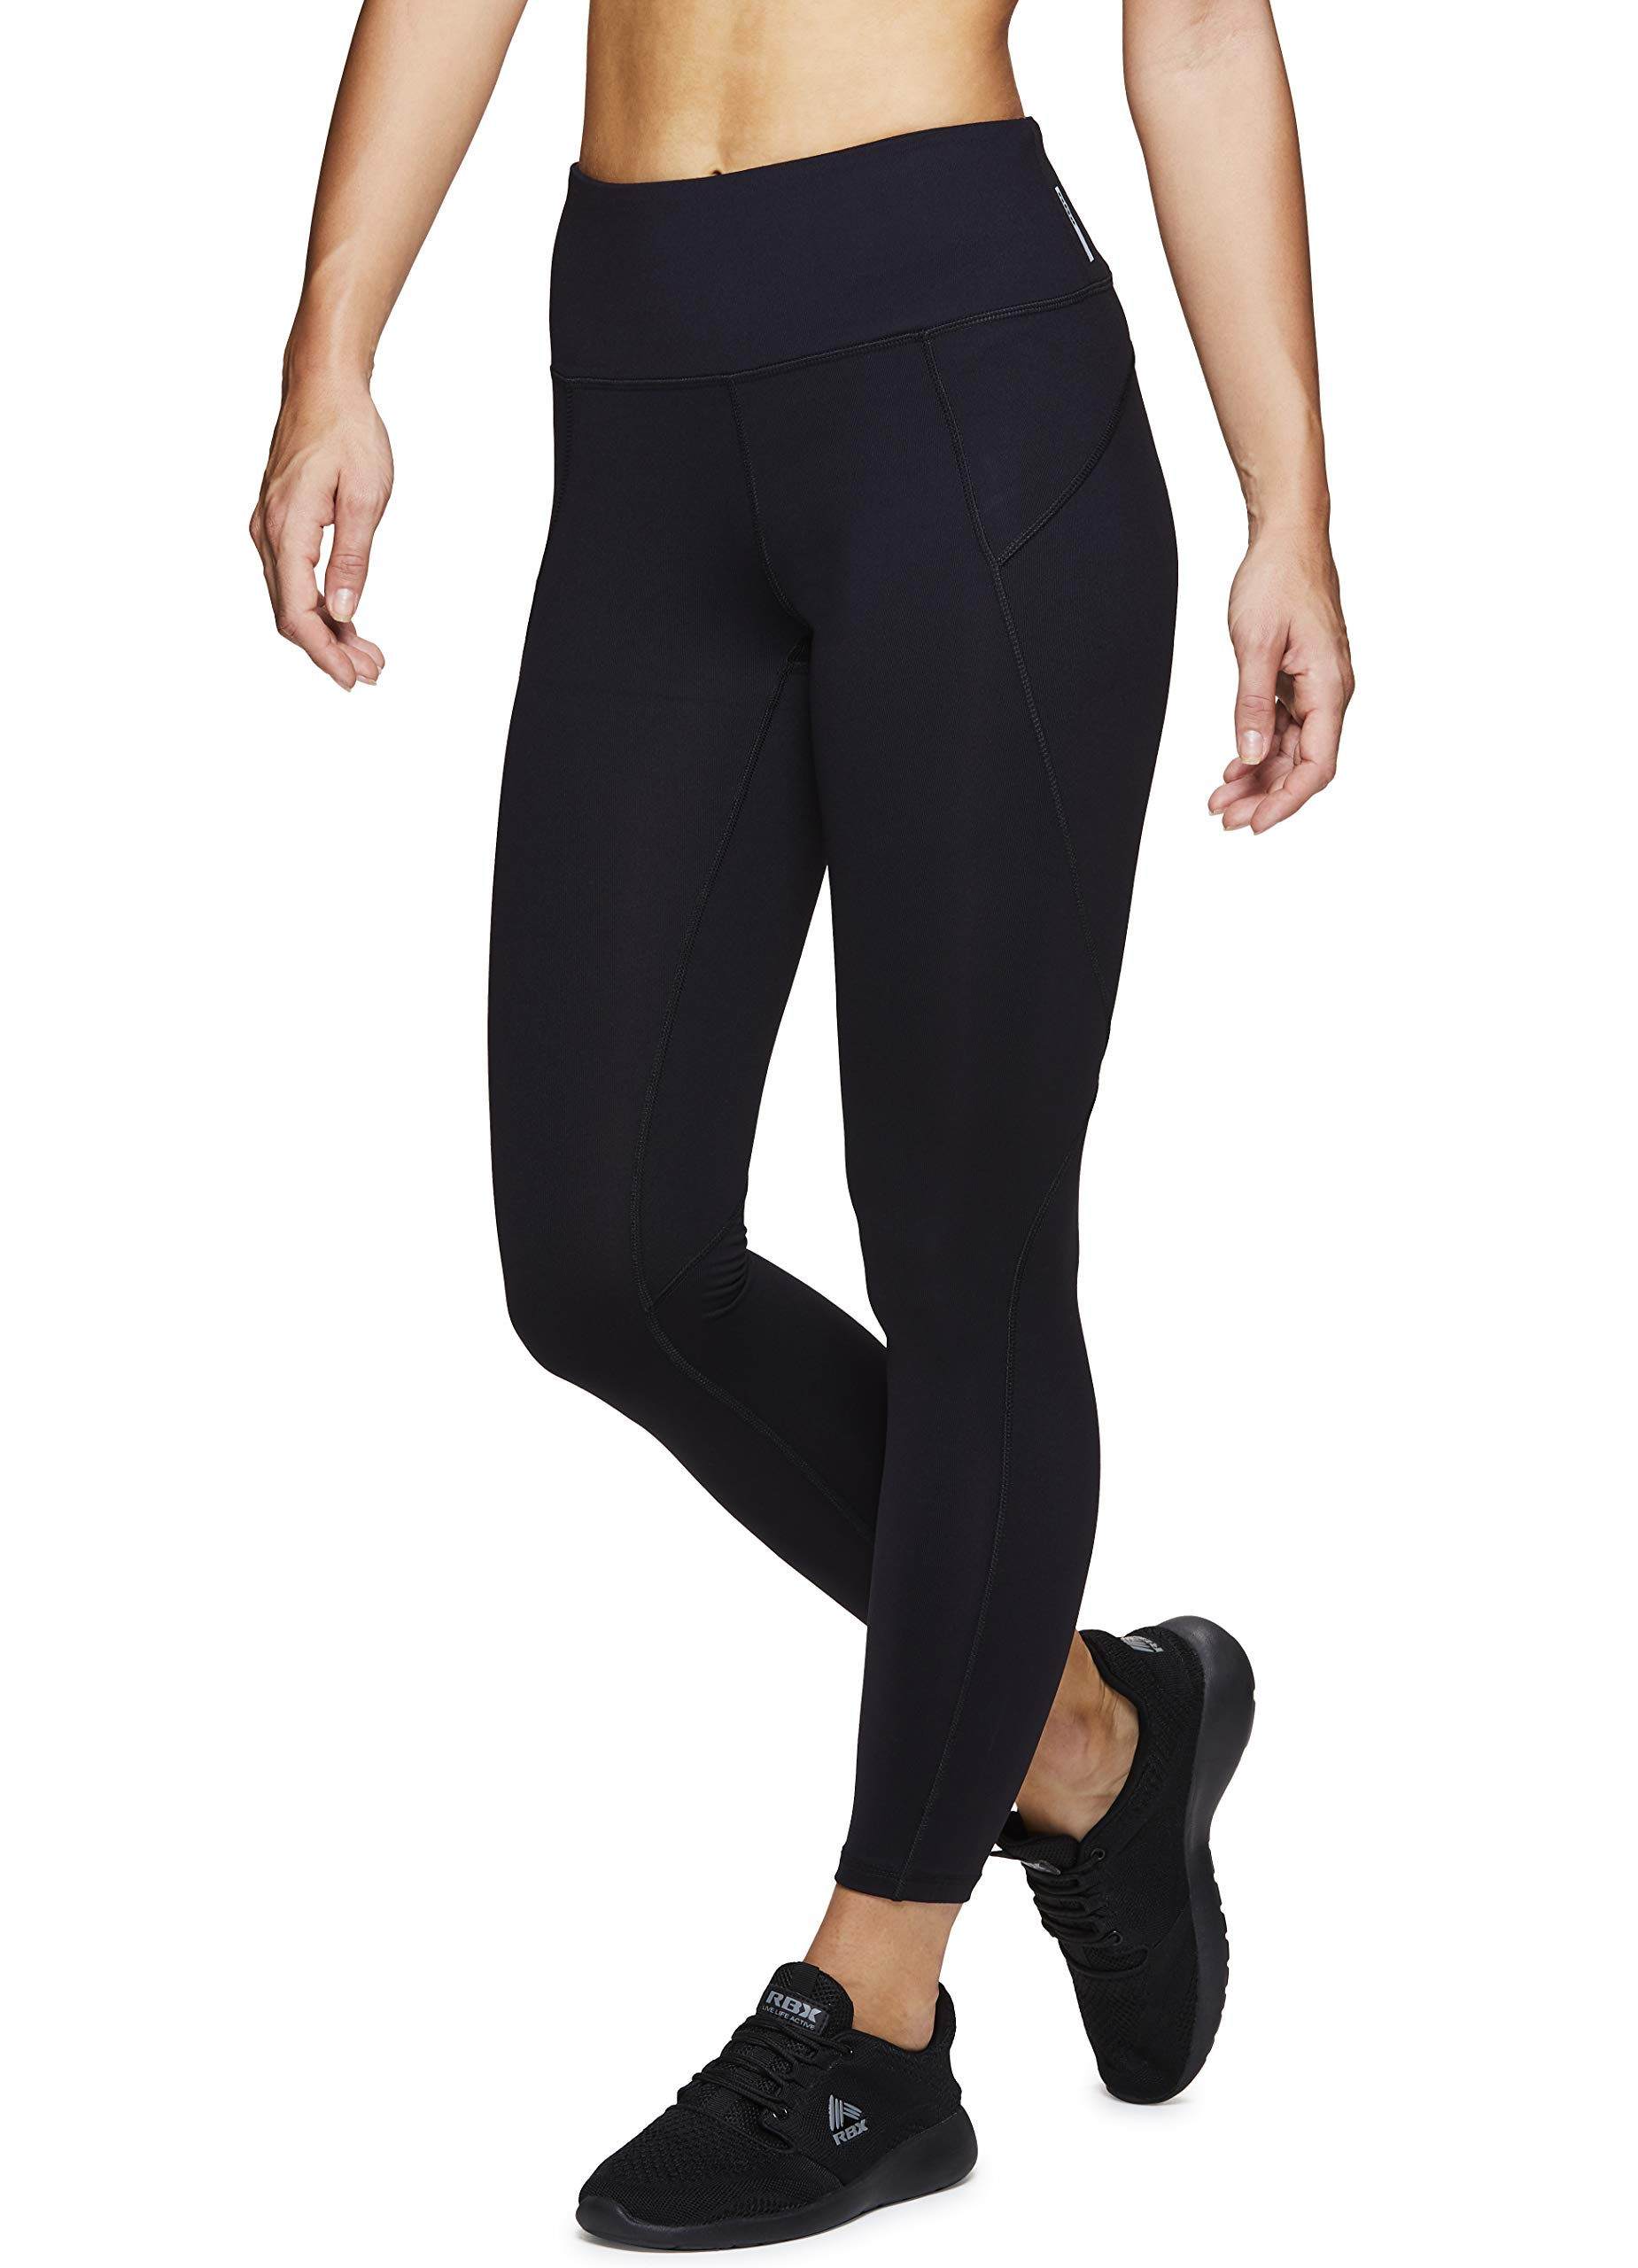 RBX Active Women's Athletic Yoga Workout Leggings Black XL by RBX